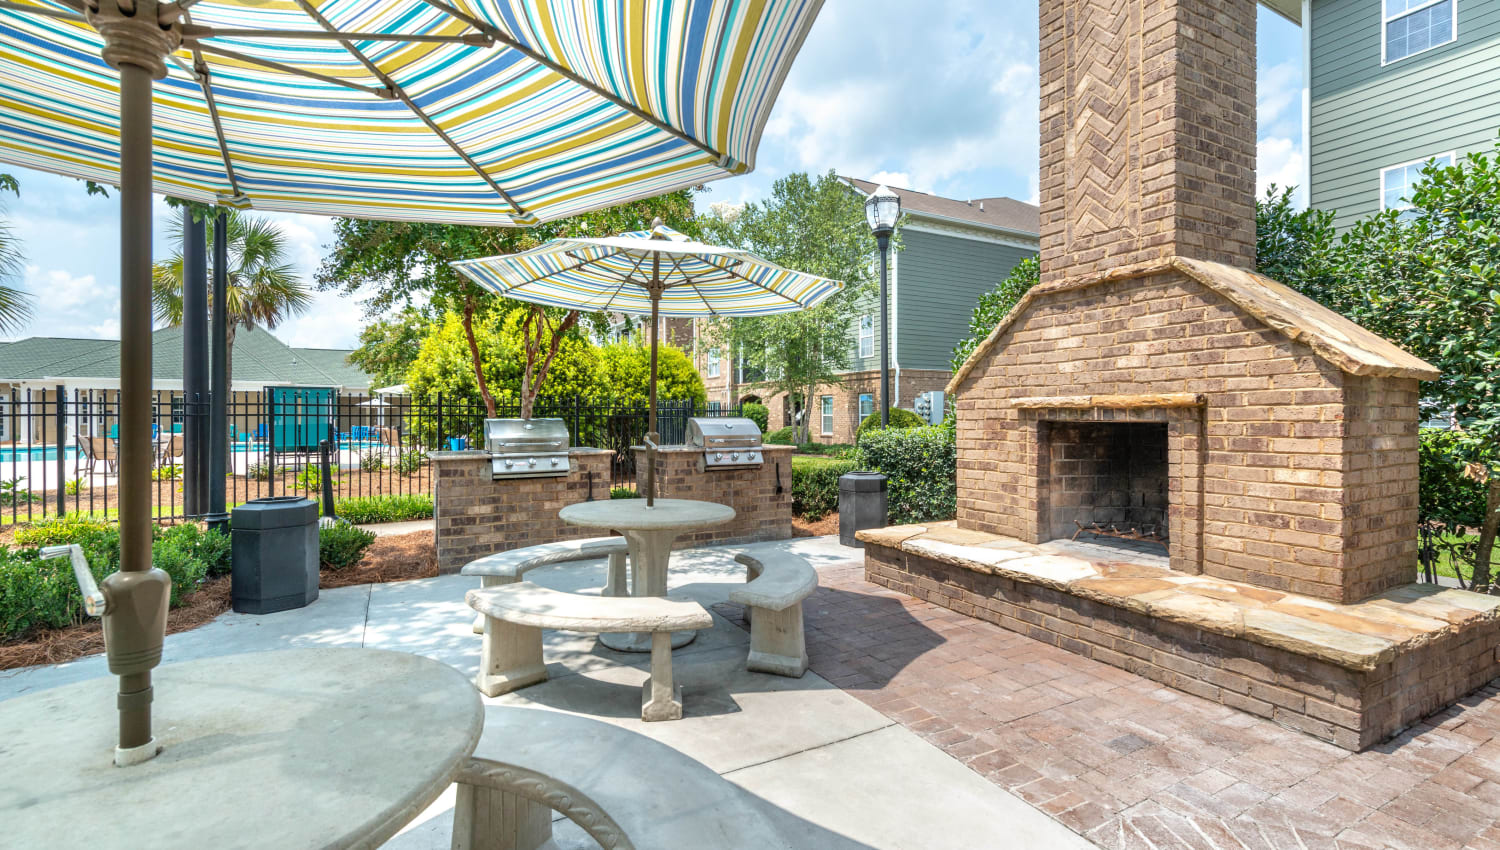 Lounge area in front of the fire pit at Olympus Carrington in Pooler, Georgia